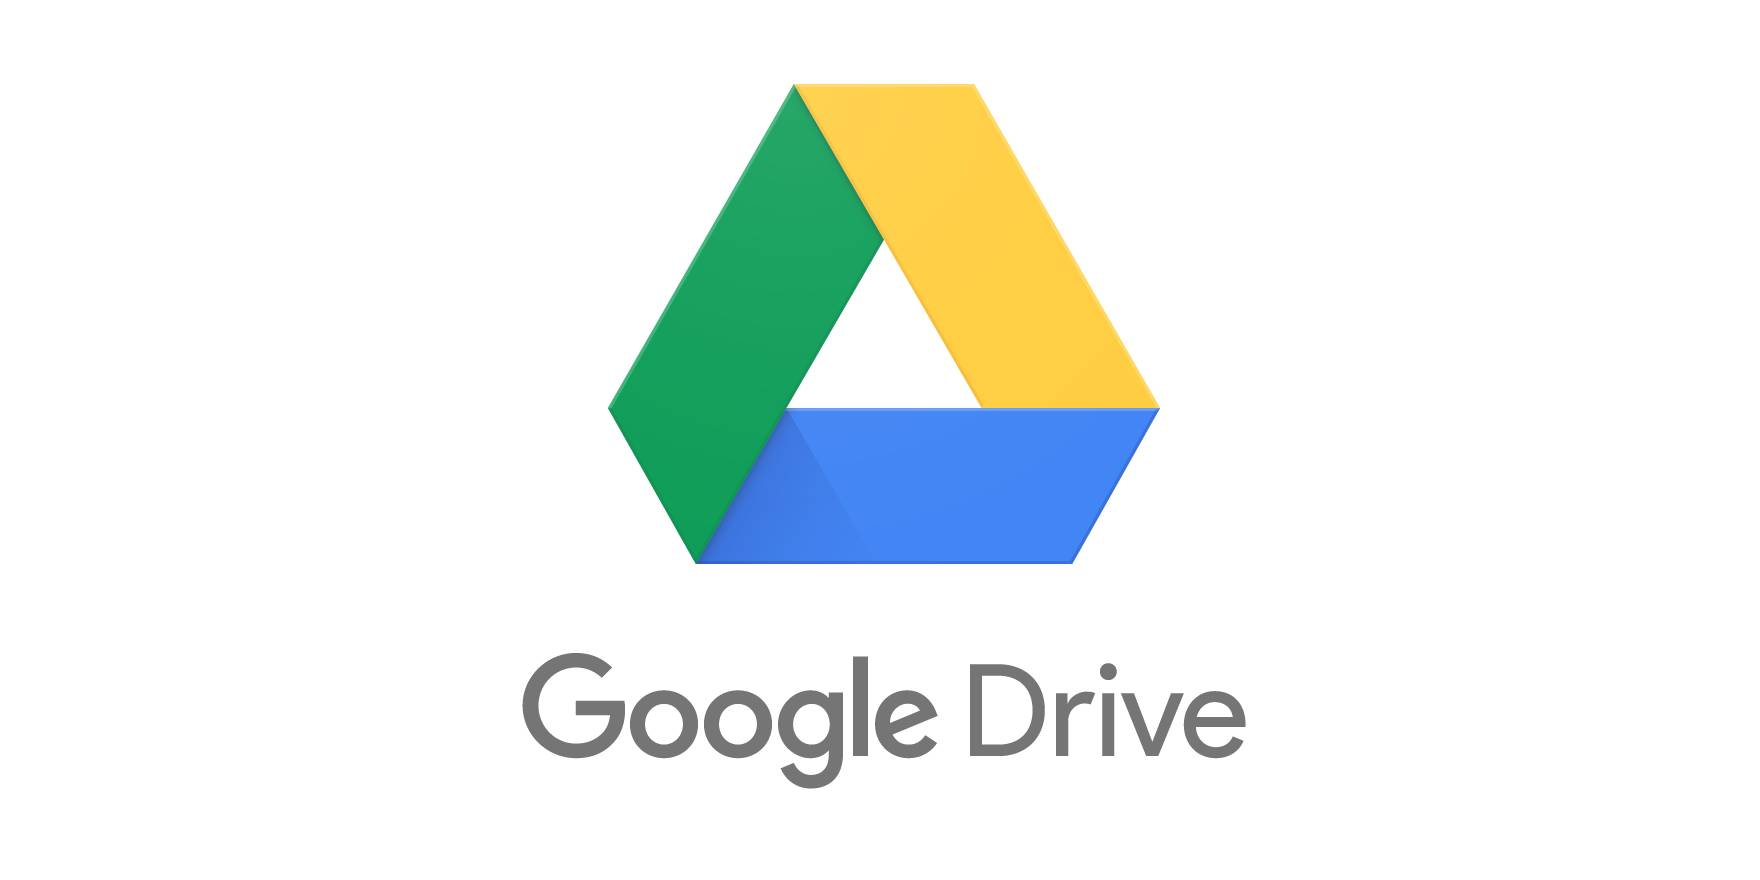 It's not just you, Google Drive is down for some today - 9to5Google